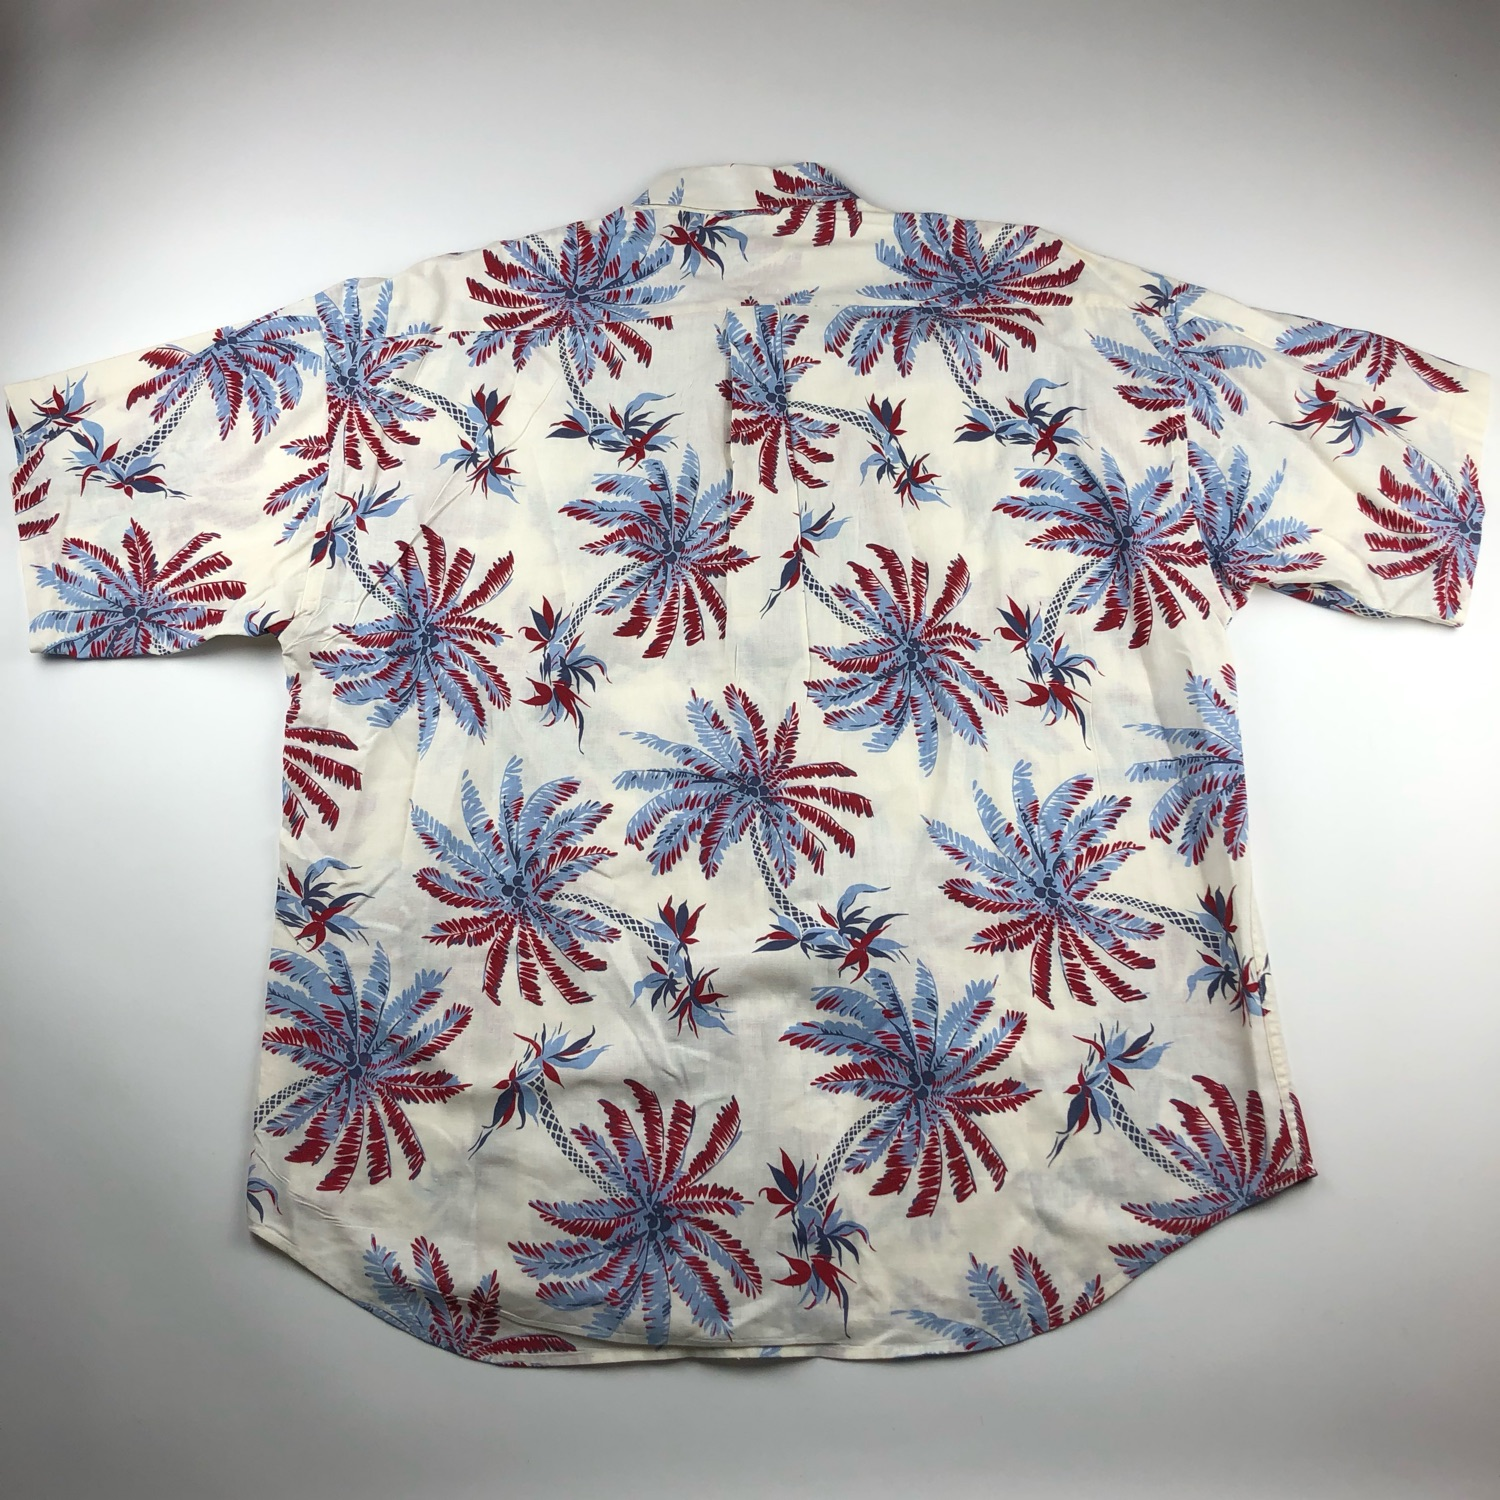 Vtg Tommy Hilfiger Hawaiian Print Button Up Shirt